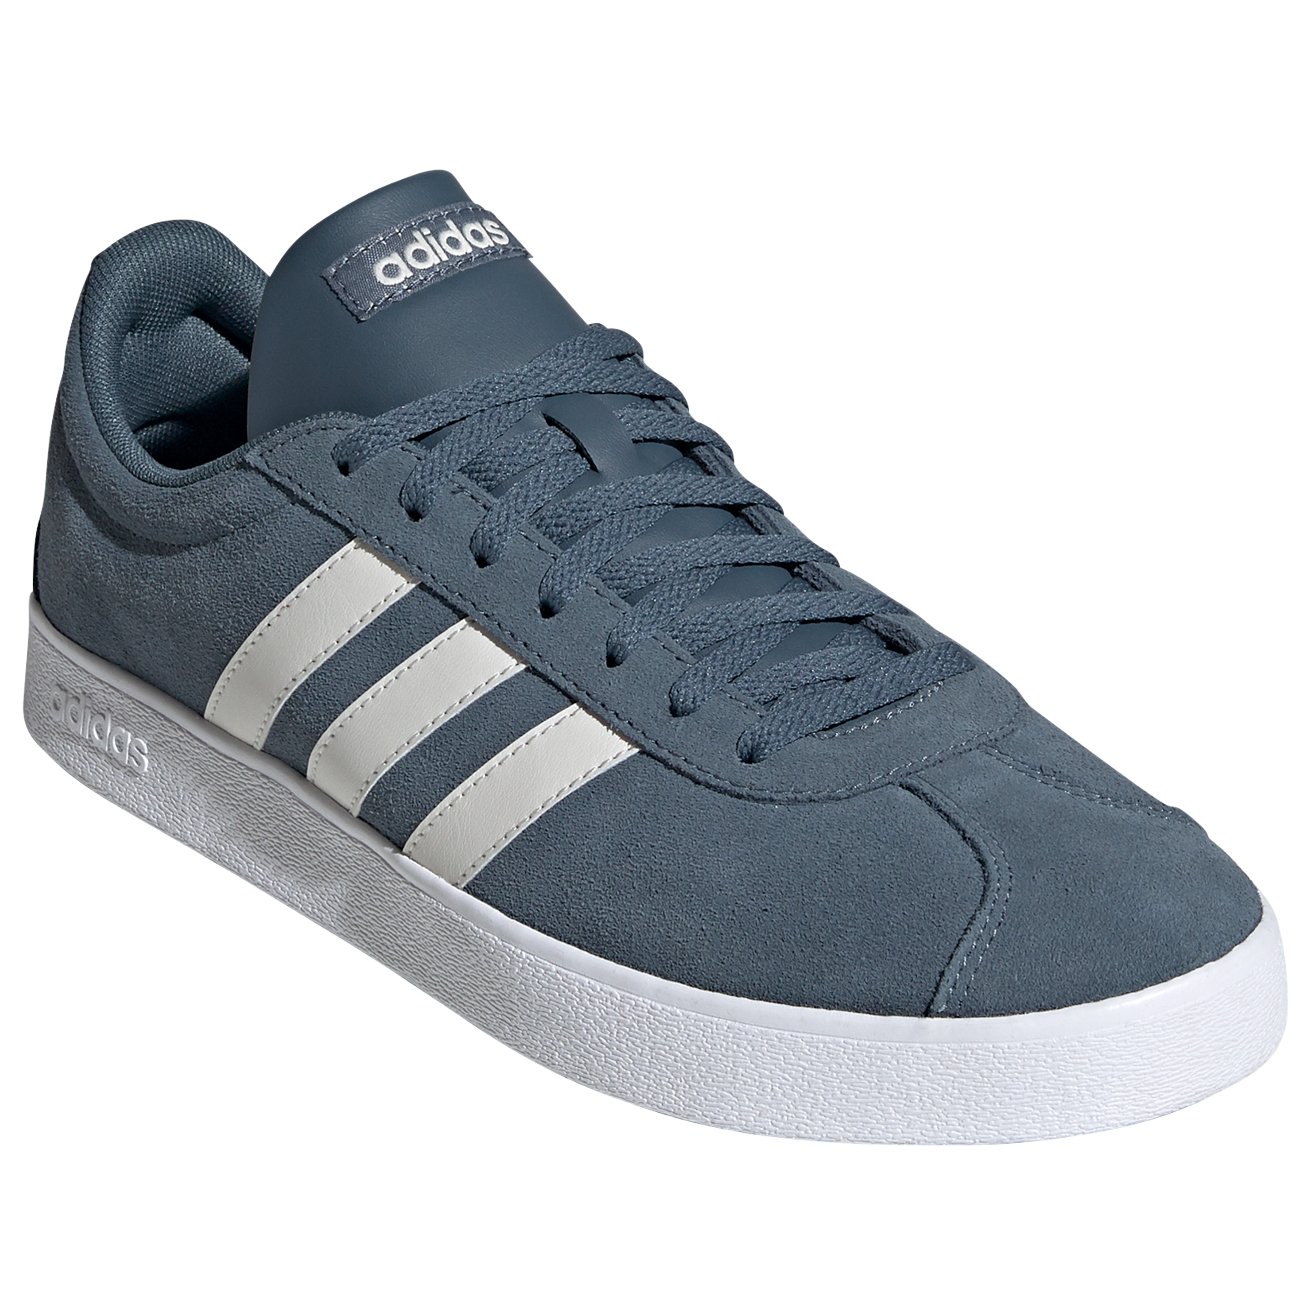 Adidas VL Court 2.0 - Sneakers | Free